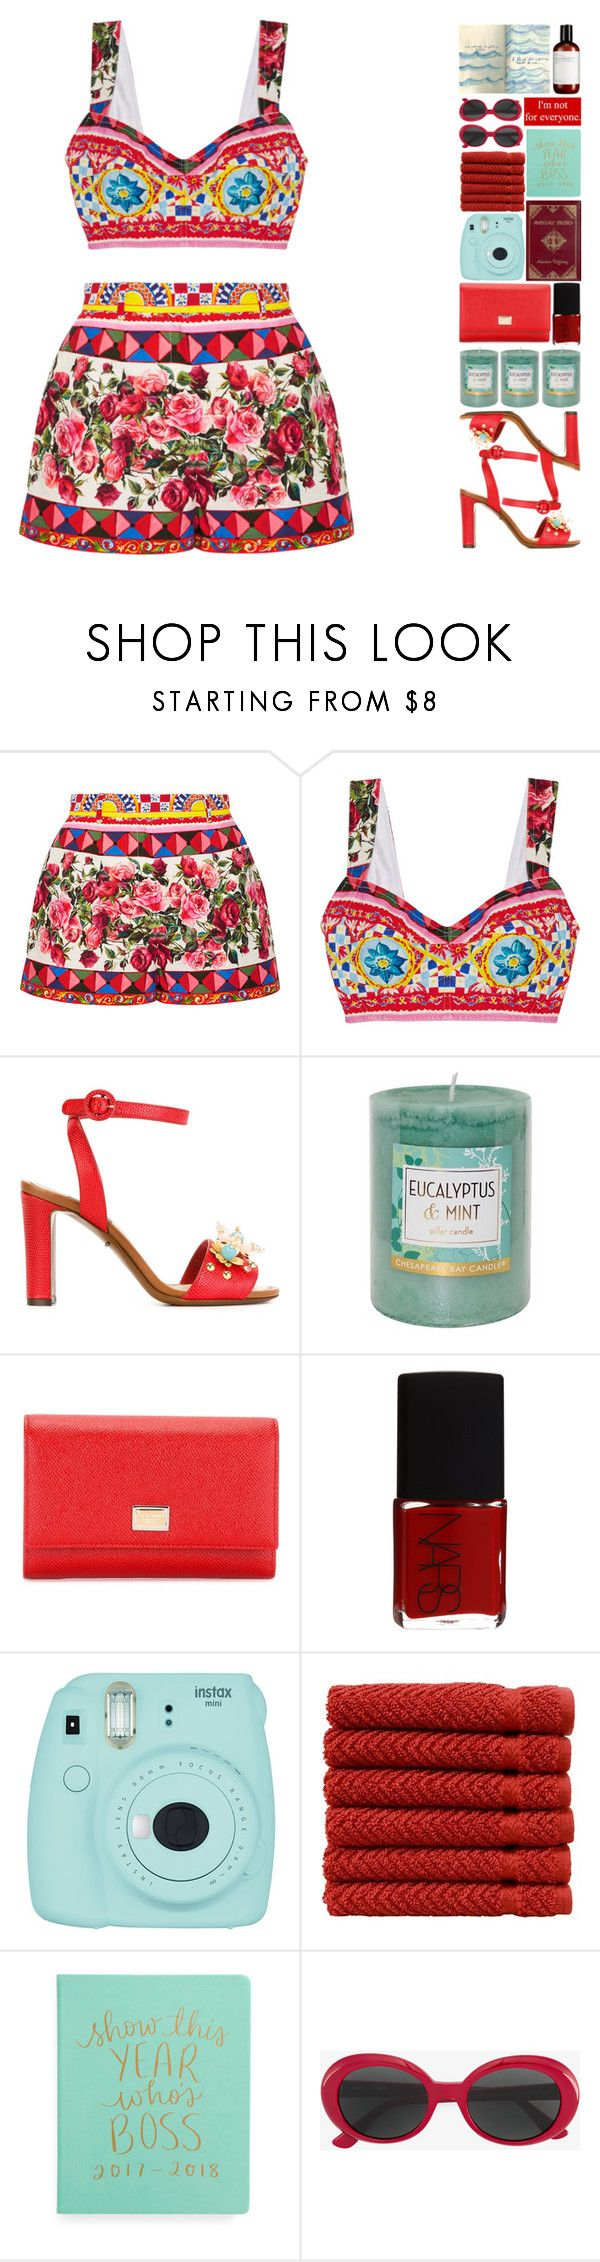 """""""6339"""" by tiffanyelinor ❤ liked on Polyvore featuring Dolce&Gabbana, Chesapeake Bay Candle, NARS Cosmetics, Fujifilm, Theory, Linum Home Textiles and Yves Saint Laurent"""